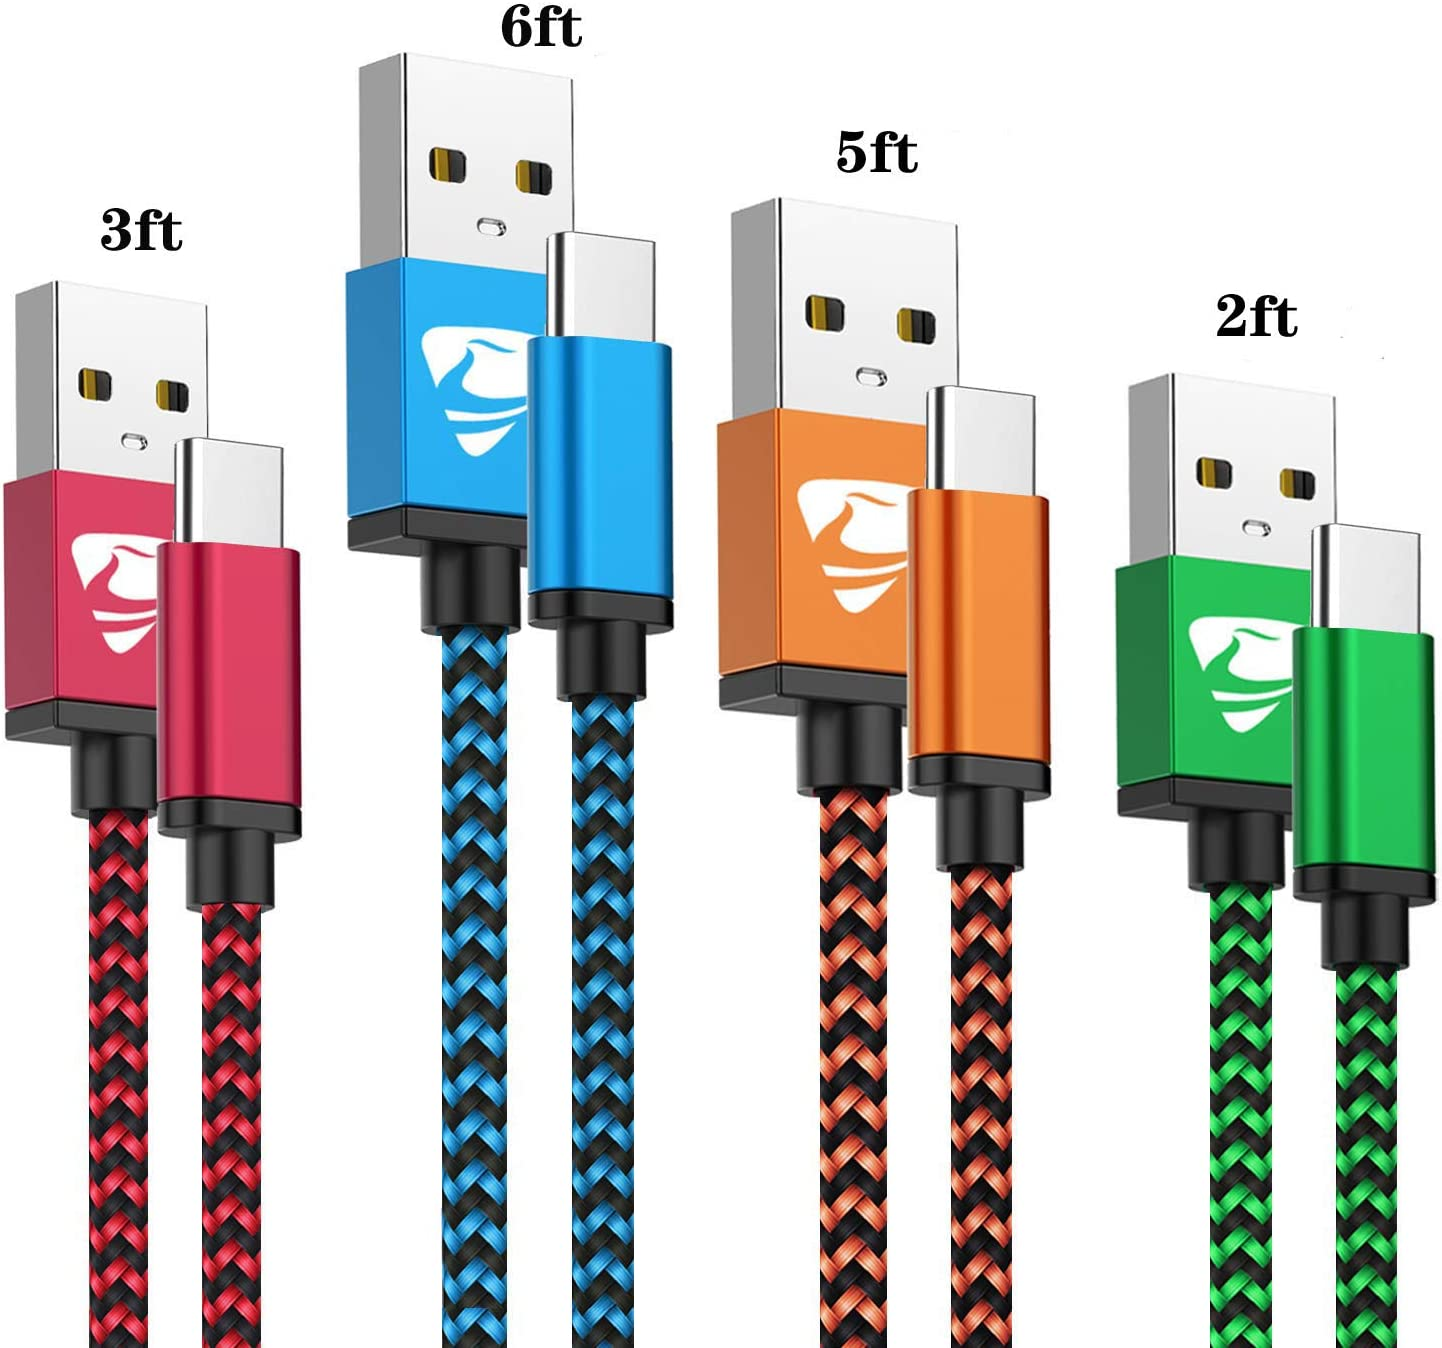 USB Type C Cable 3A Fast Charging USB C Charger 4Pack [2+3+5+6FT] Nylon Type C Phone Charger Fast Charging Cord for Samsung Galaxy S10/S9/S8/Note 9/8/A20/A20e/A10e/A50/A51/S20/S10e,LG Stylo 4/5,Moto Z